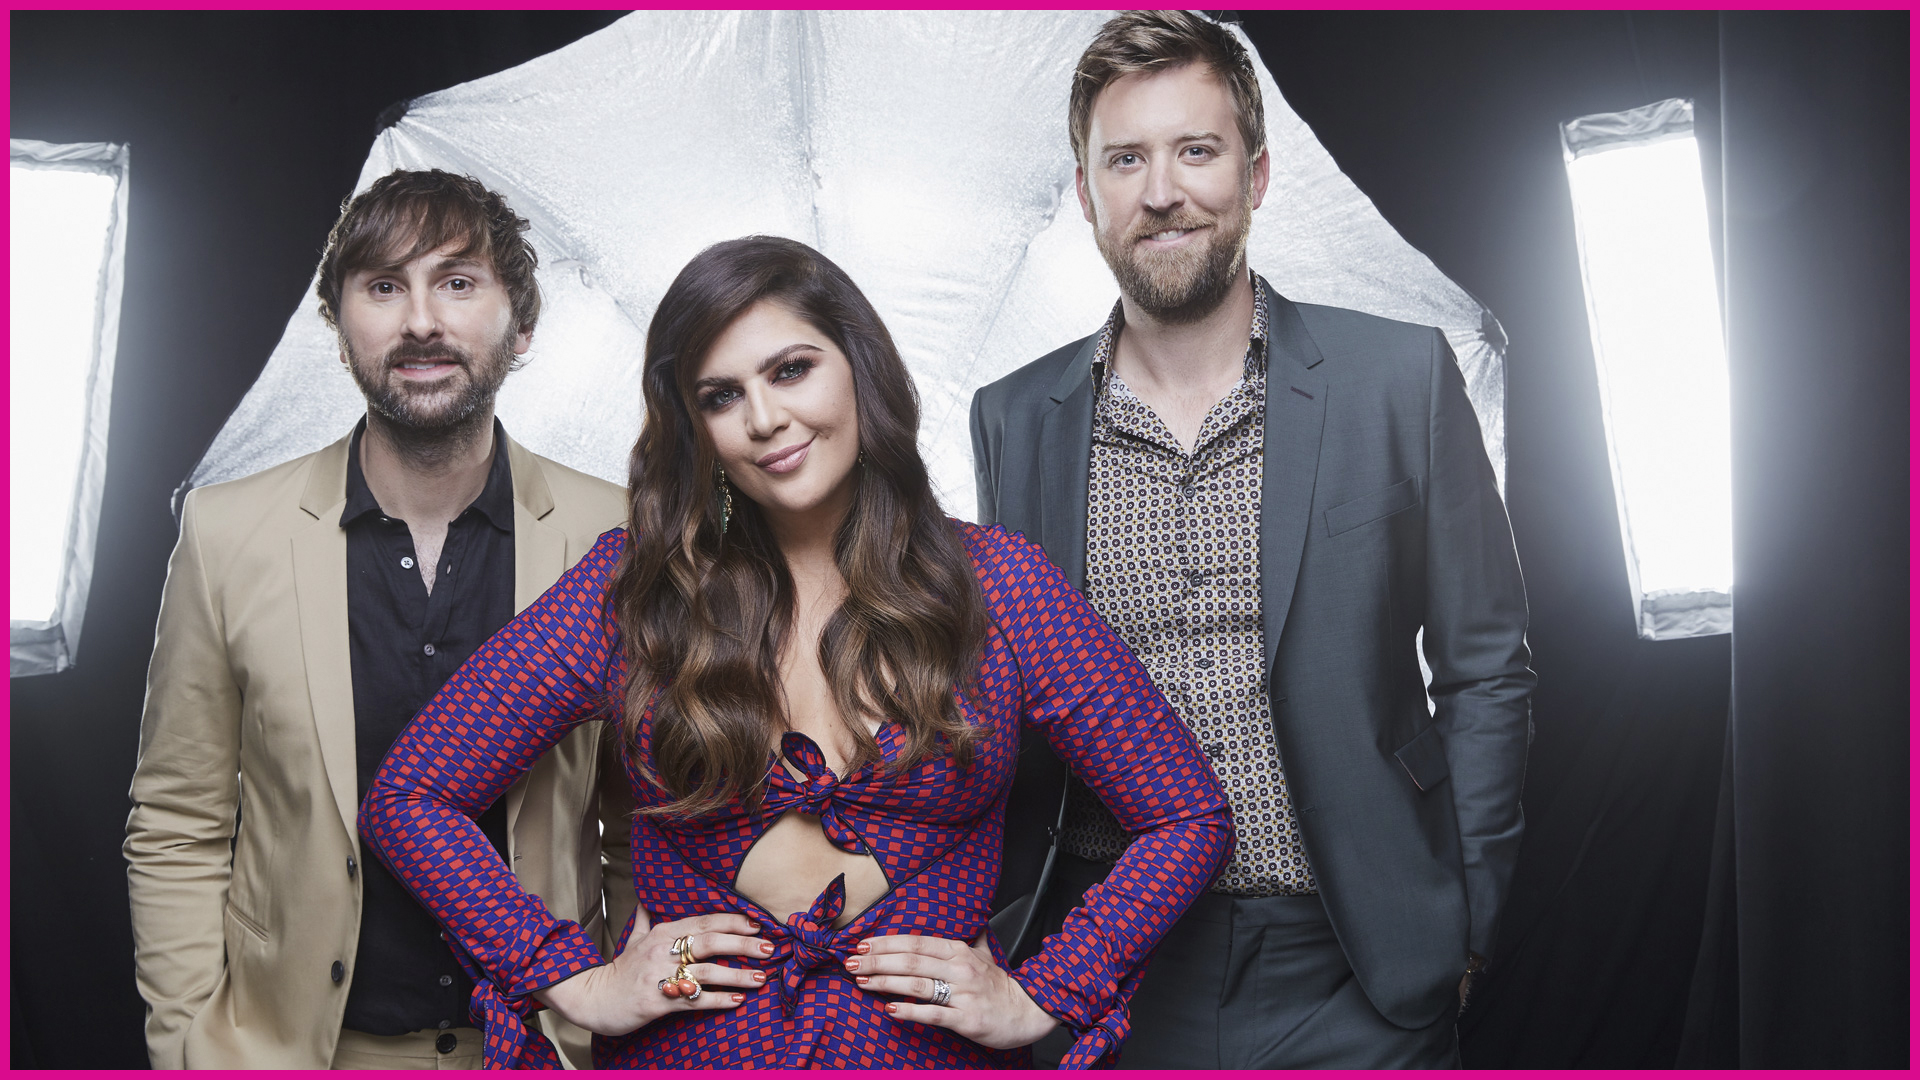 Lady Antebellum kicks back after a killer performance in Sin City.